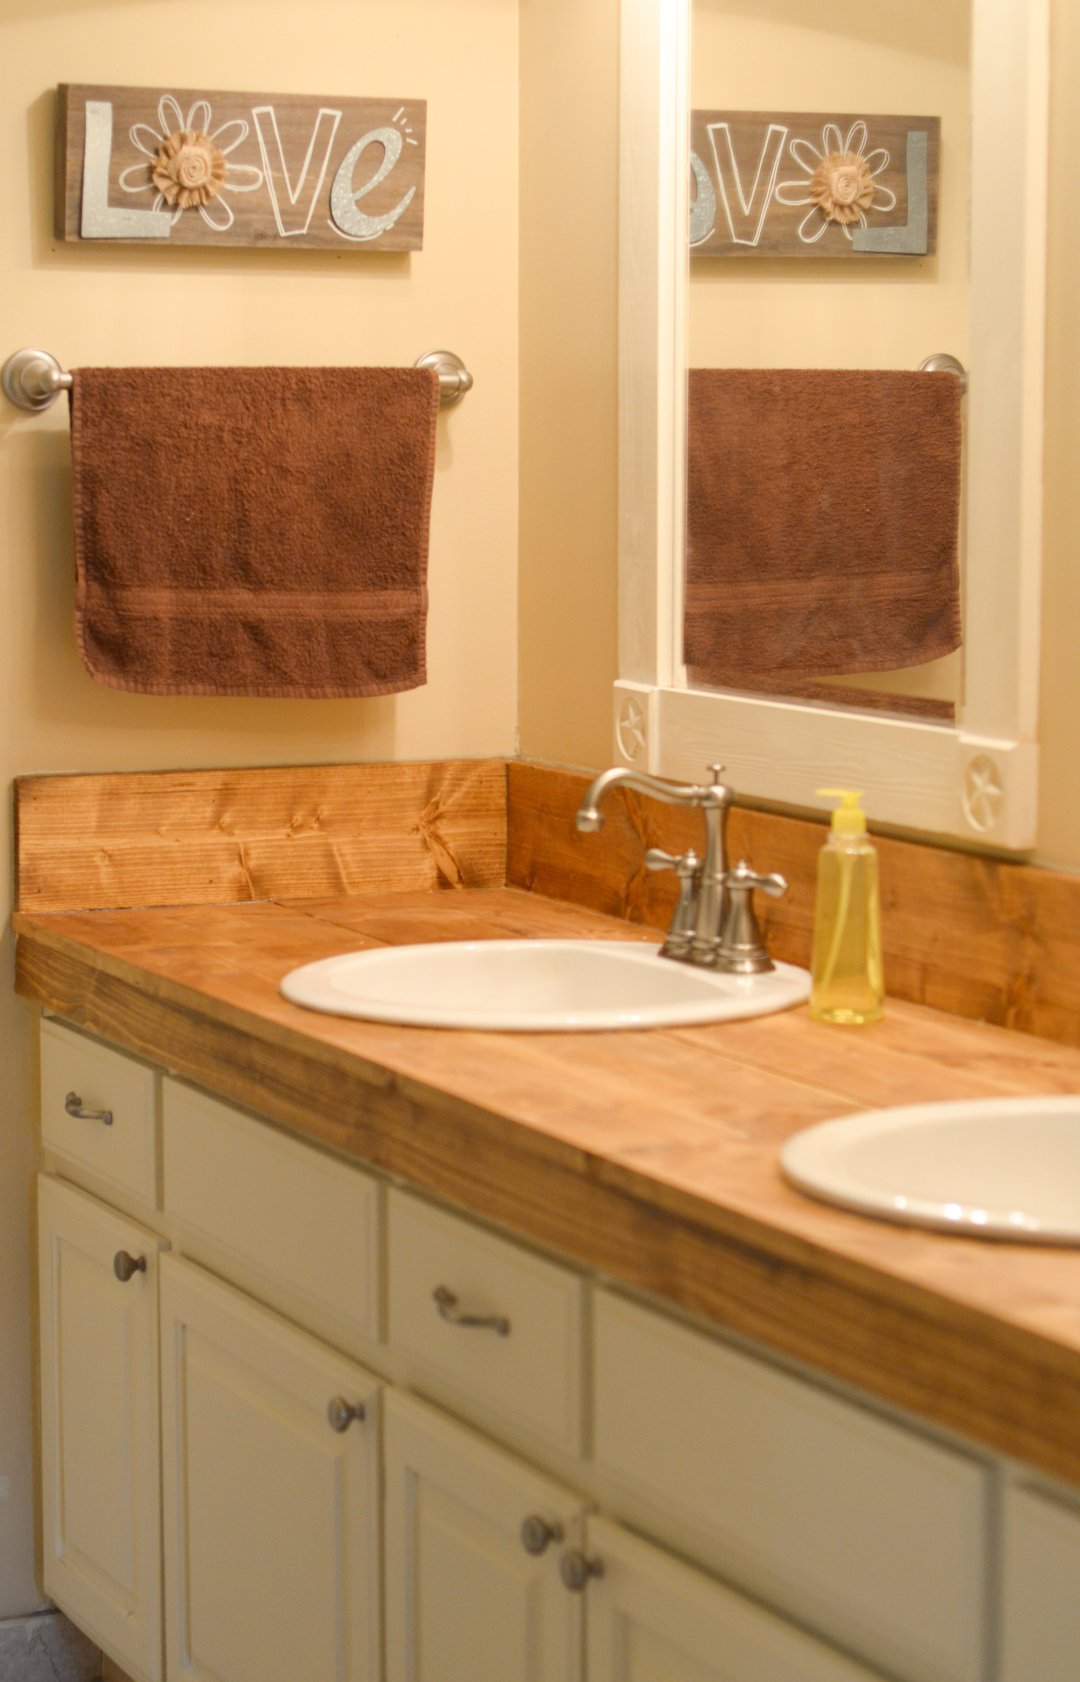 5 ways to update a bathroom on a budget mommy hates cooking for Updating a bathroom